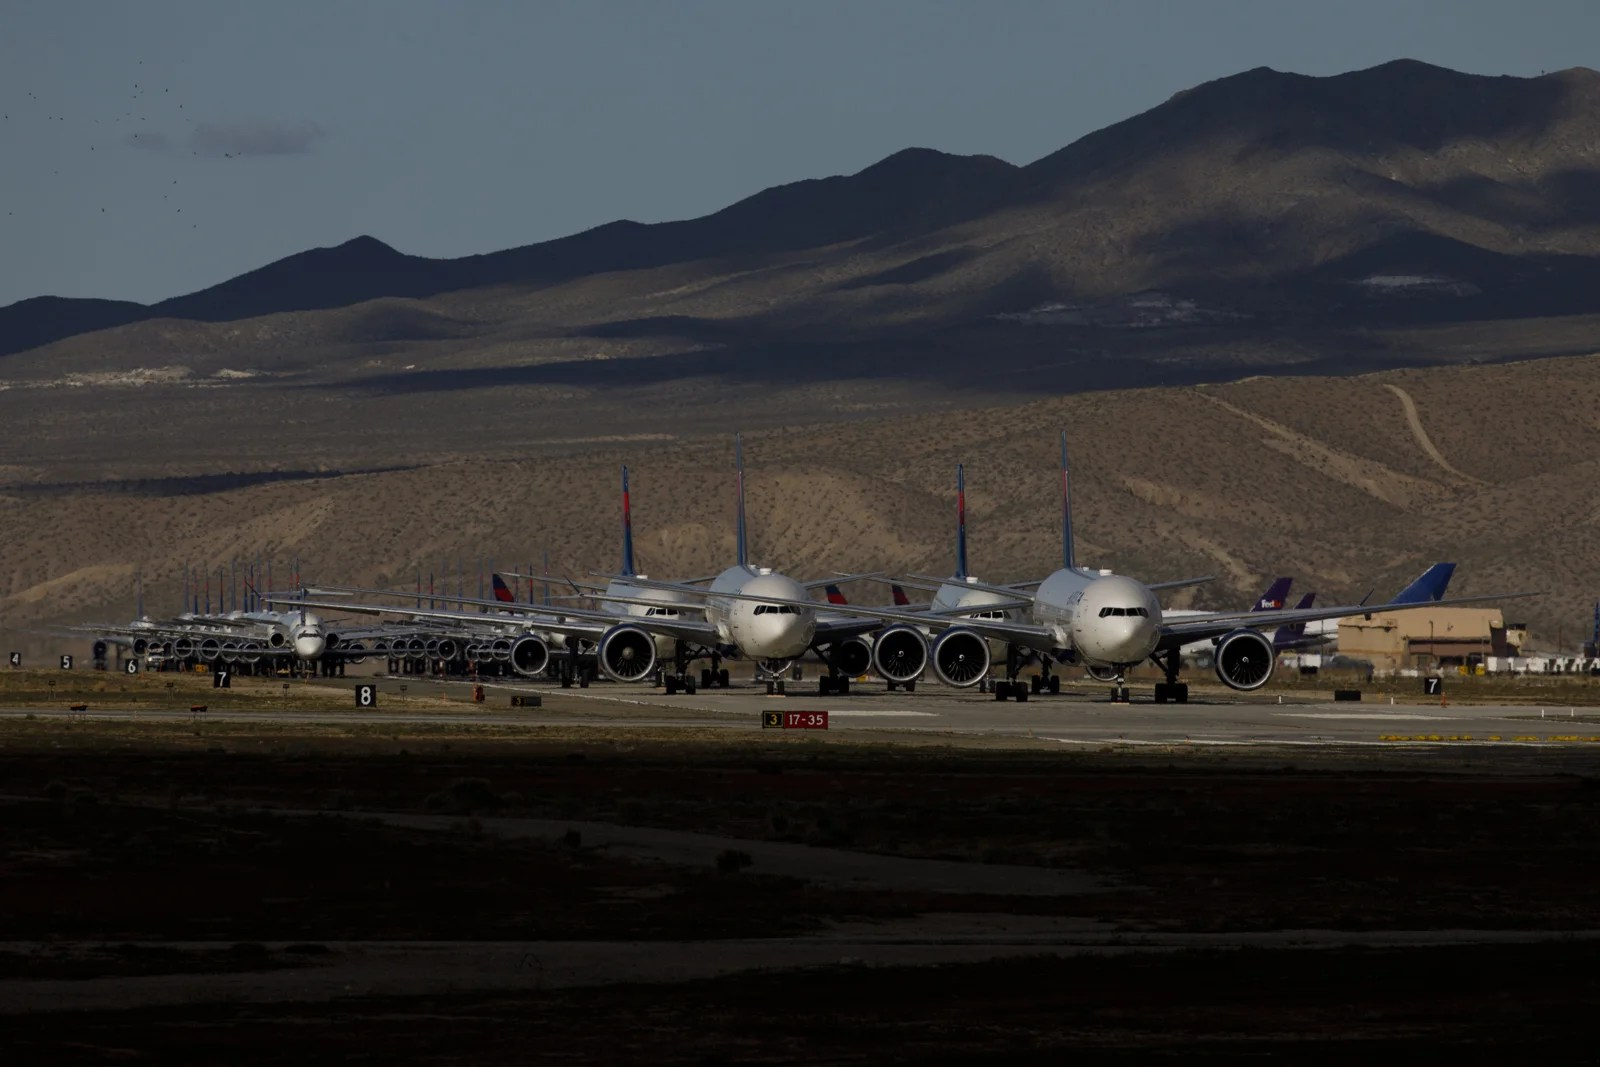 Pilots beware: some runways are now parking lots